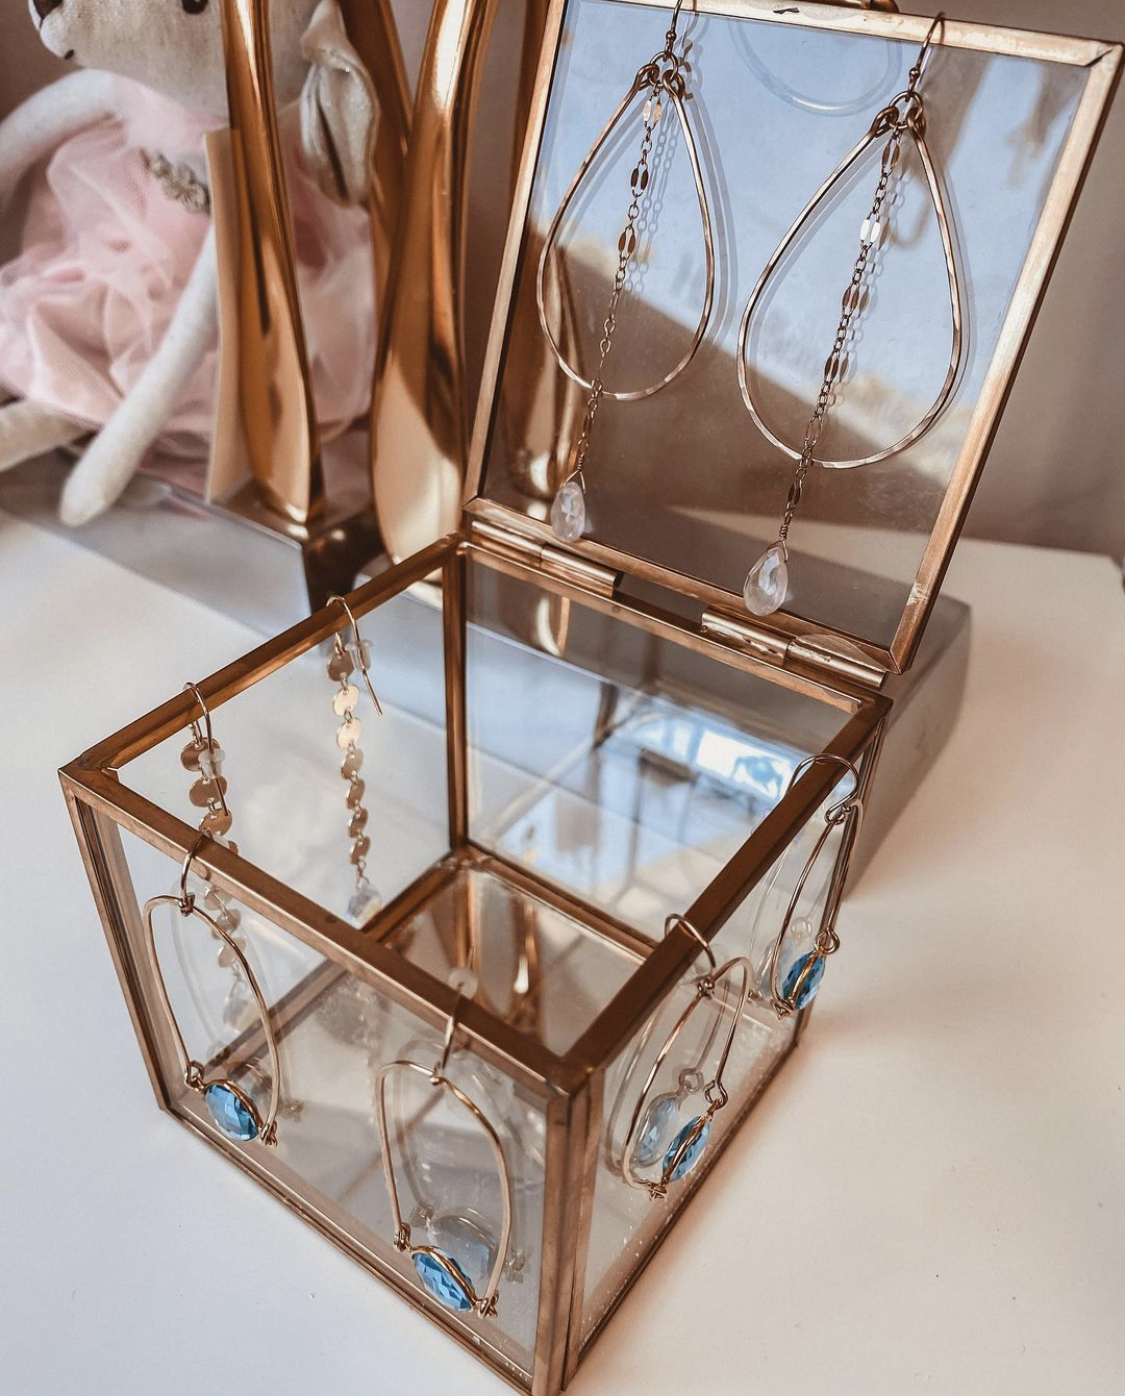 HBG Monterey by popular Monterey fashion blog, Haute Beauty Guide: image of HBG Monterey jewelry in a brass and glass jewelry box.